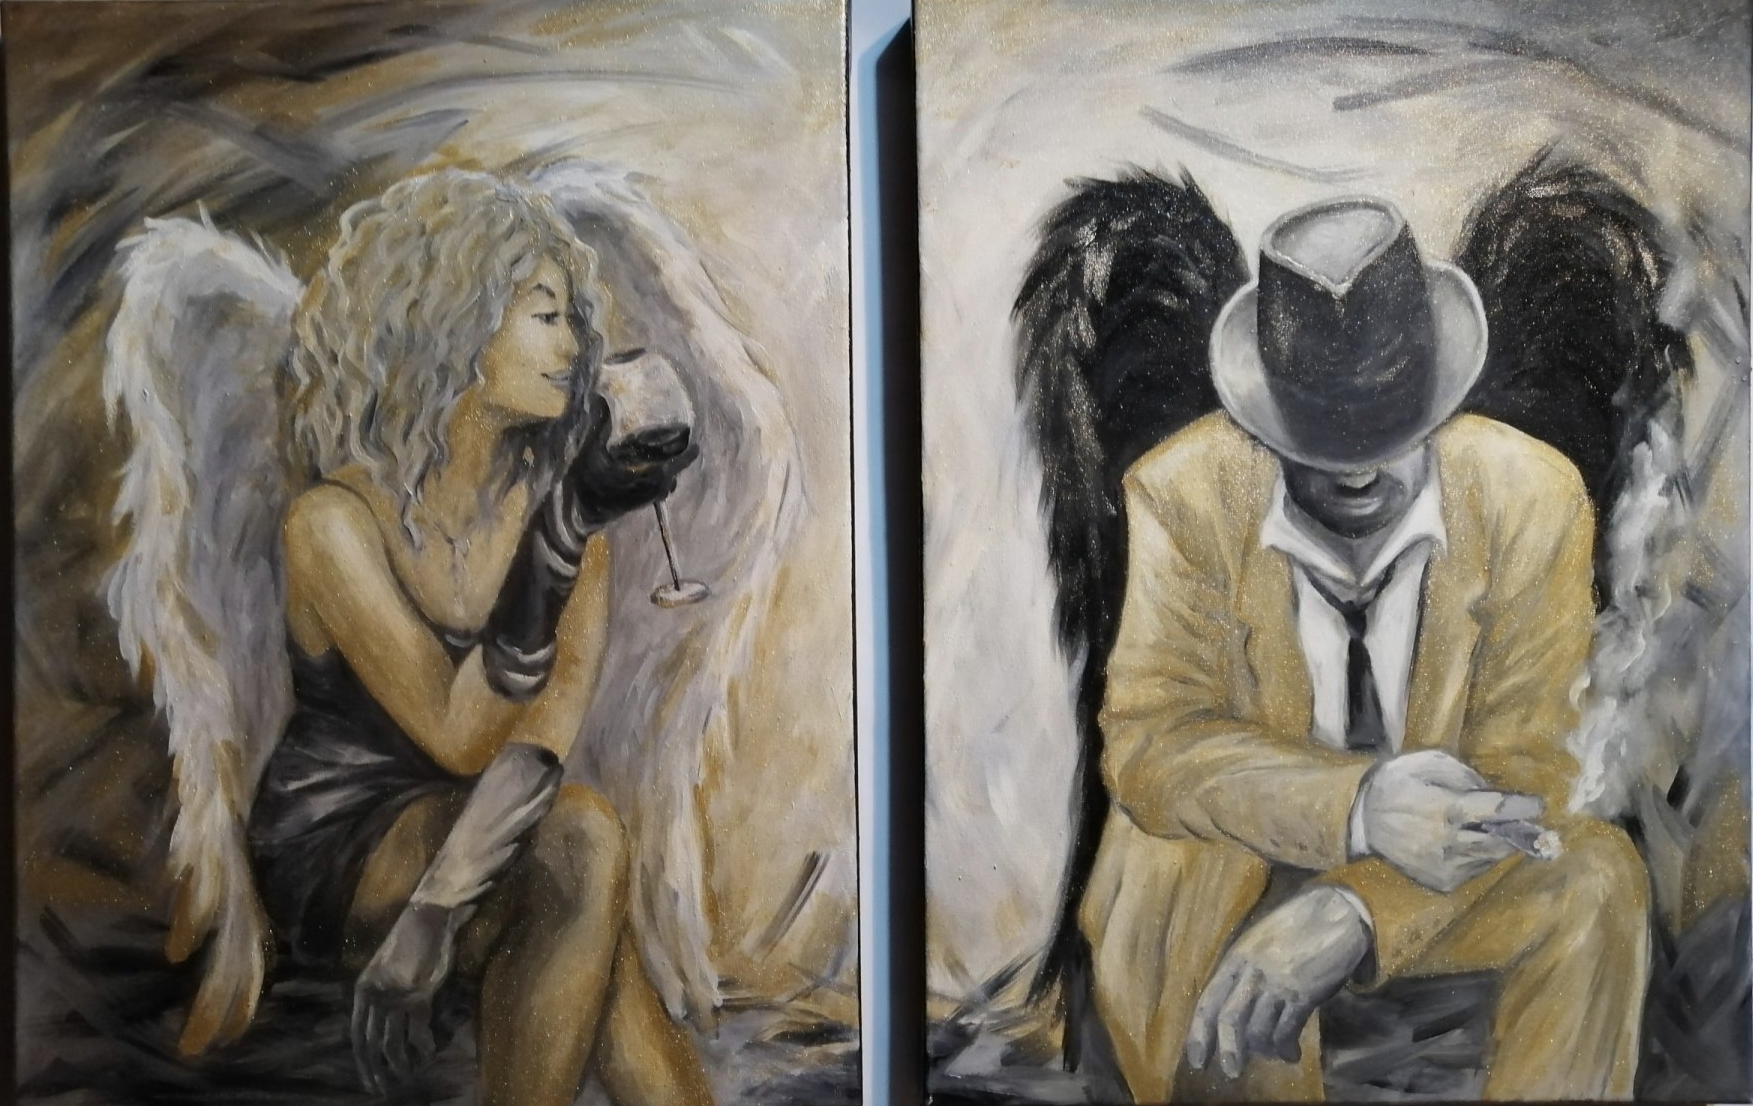 Meeting Angels or Important Conversation (Diptych)